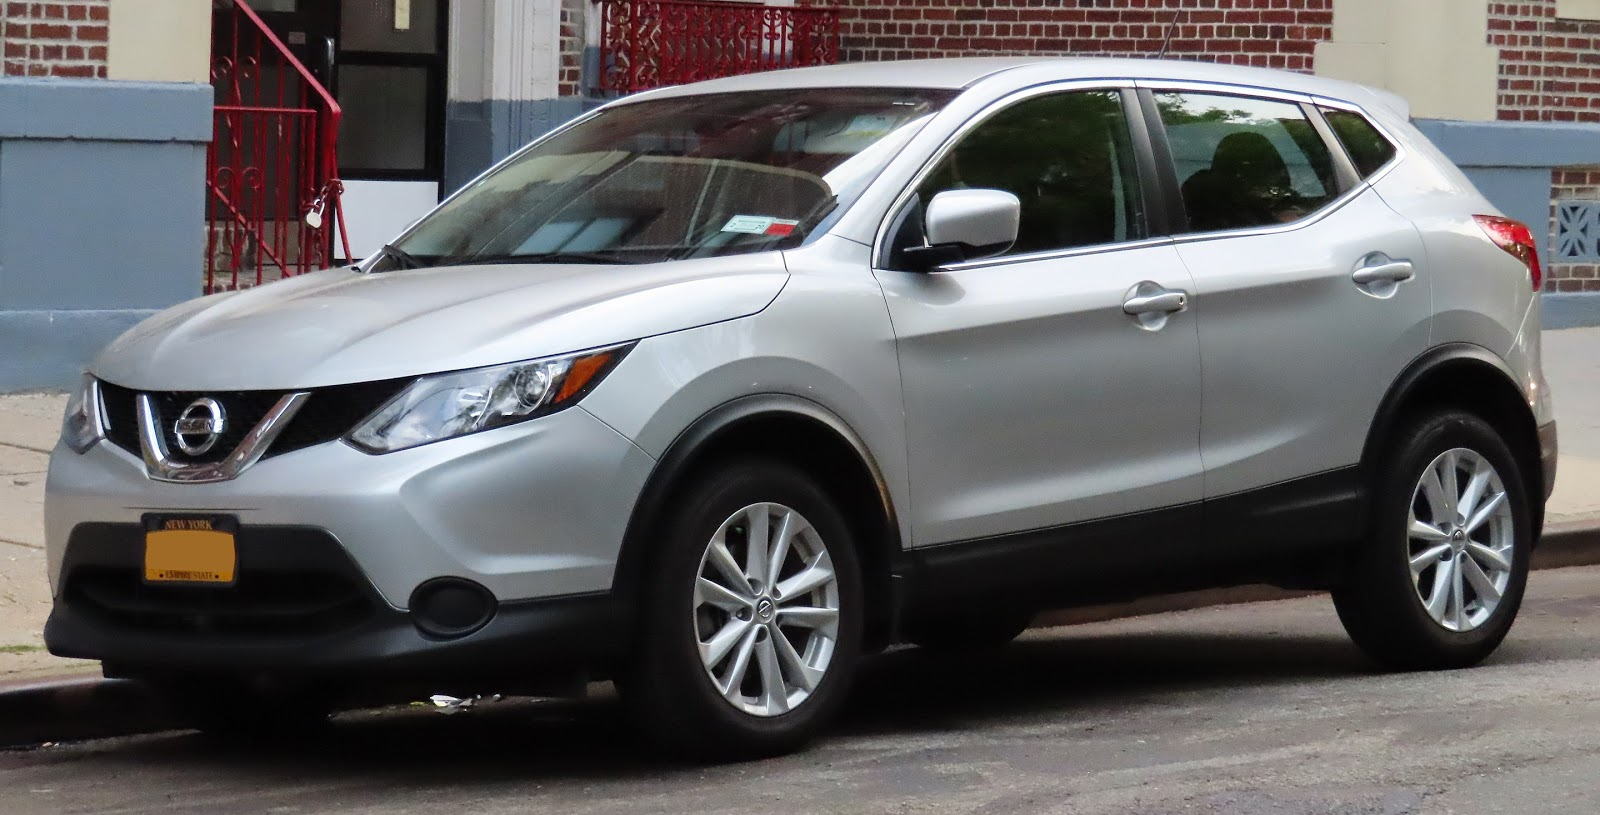 Nissan Rogue cars for sale